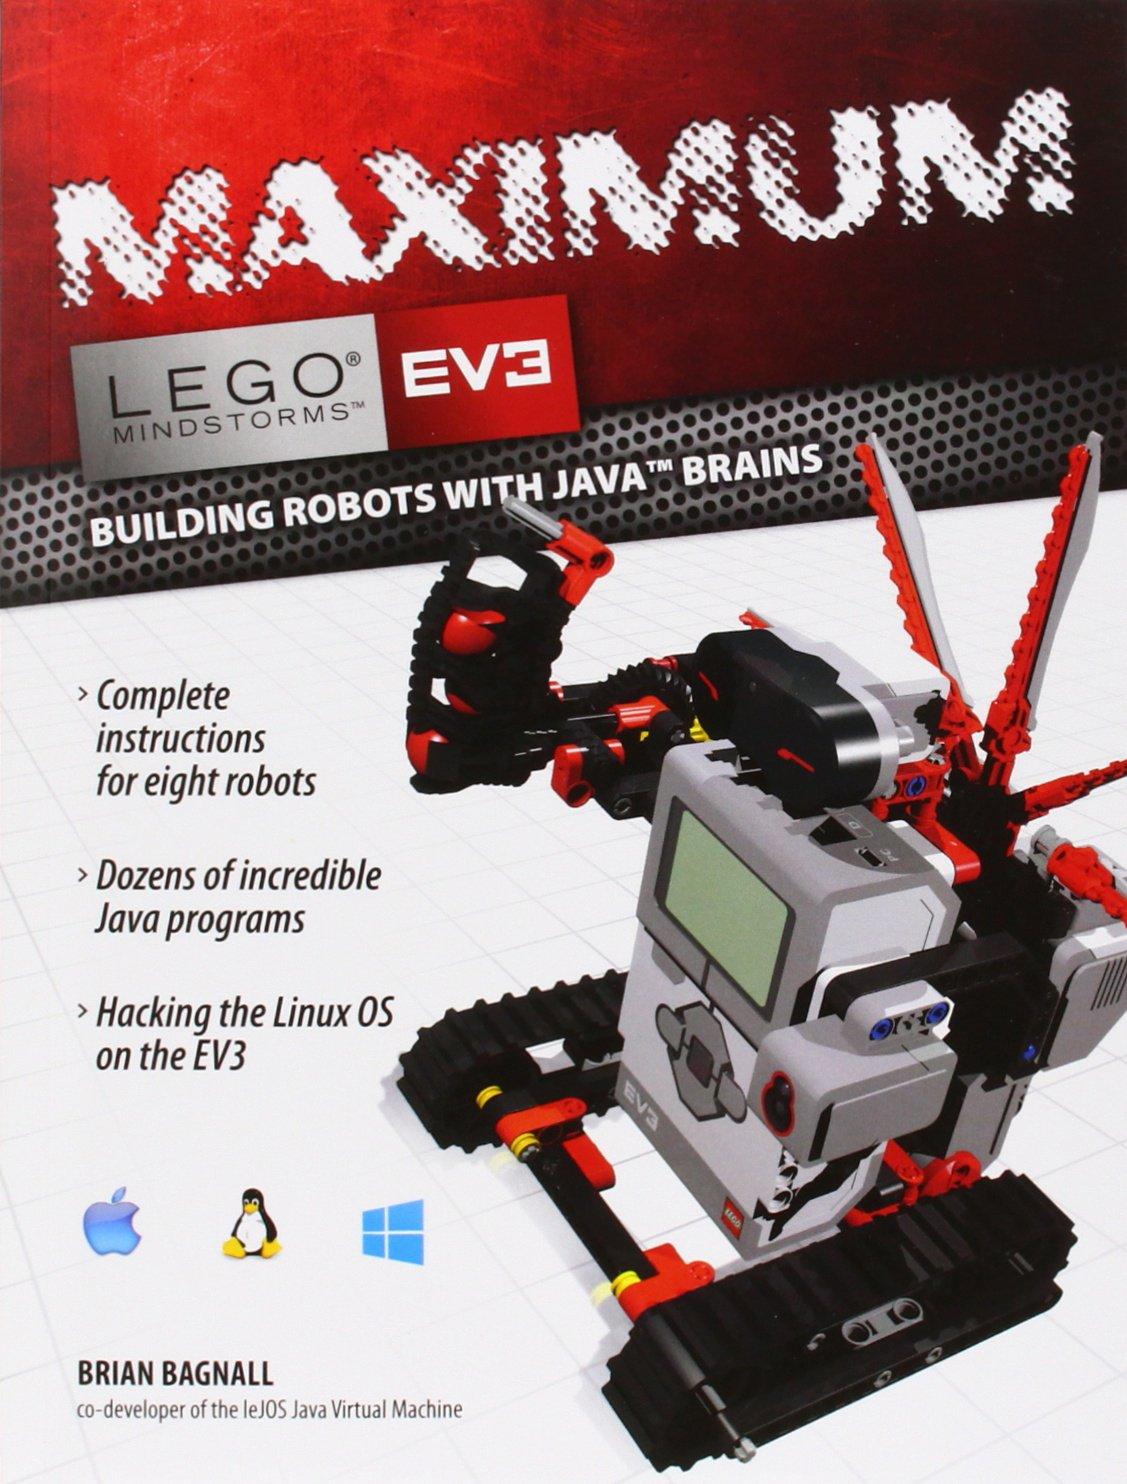 Maximum Lego Ev3 Building Robots With Java Brains Lego Mindstorms